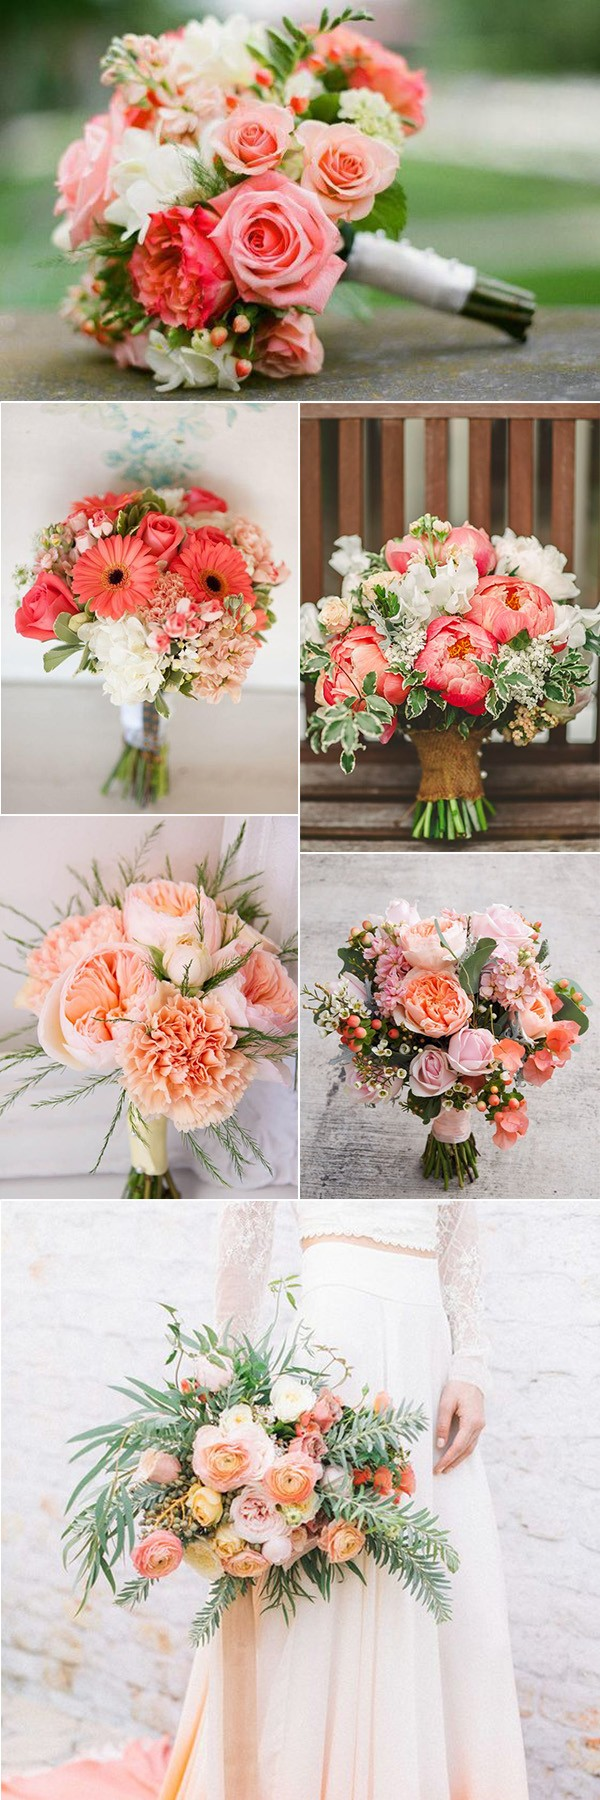 coral wedding bouquets for 2019 trends